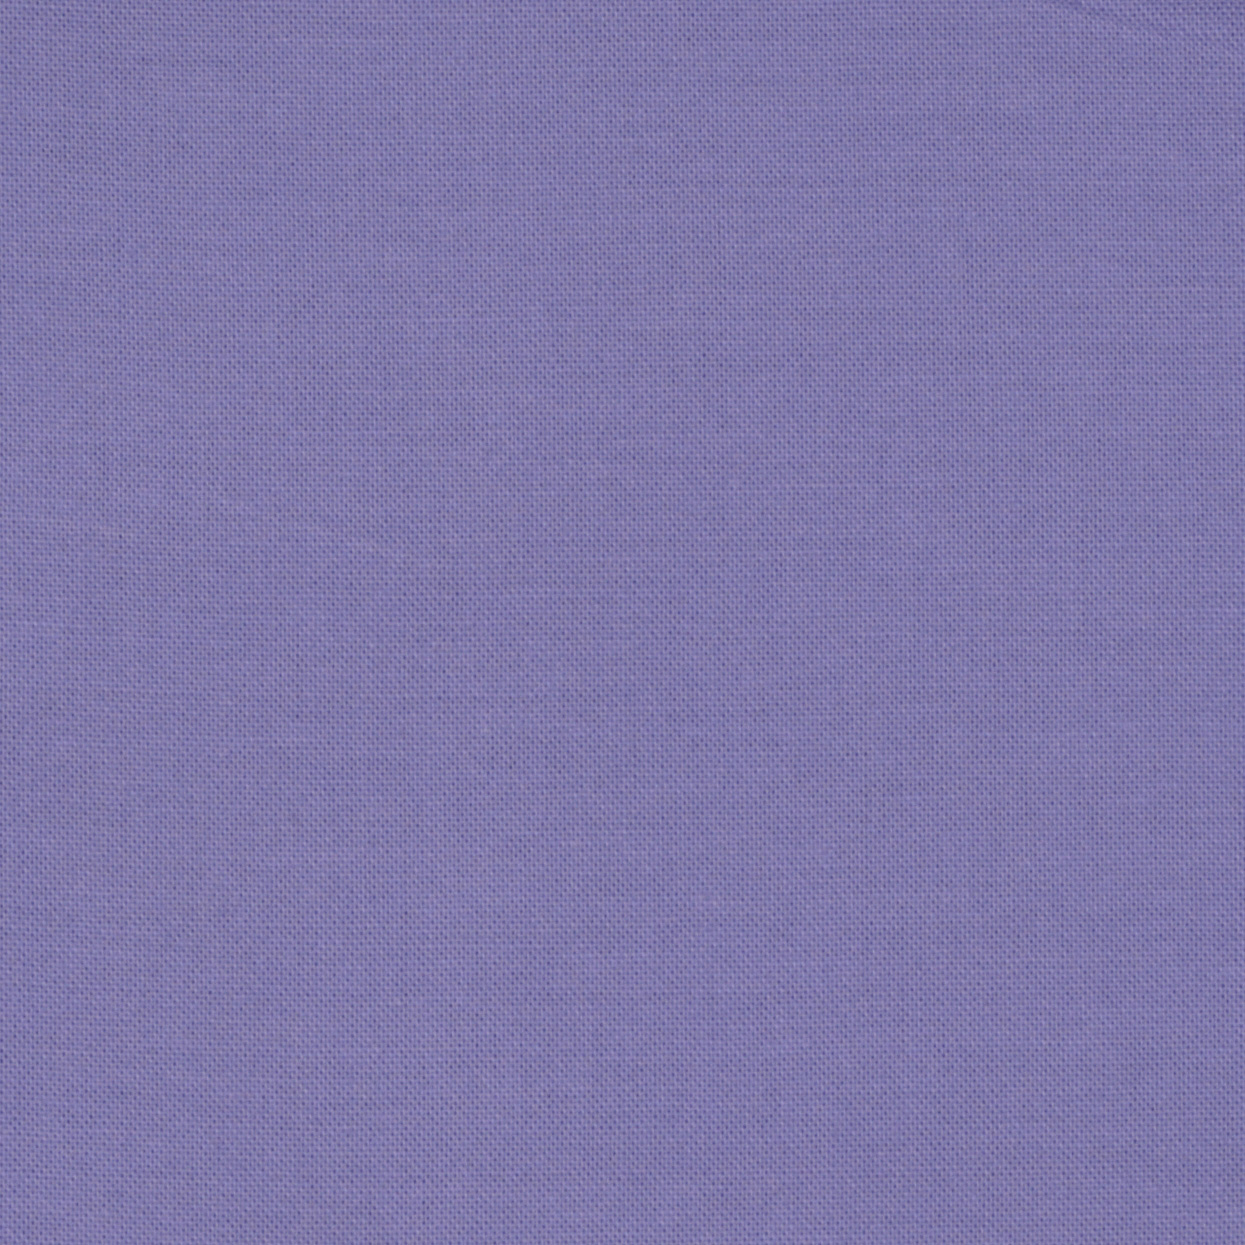 Kona Cotton Amethyst Fabric